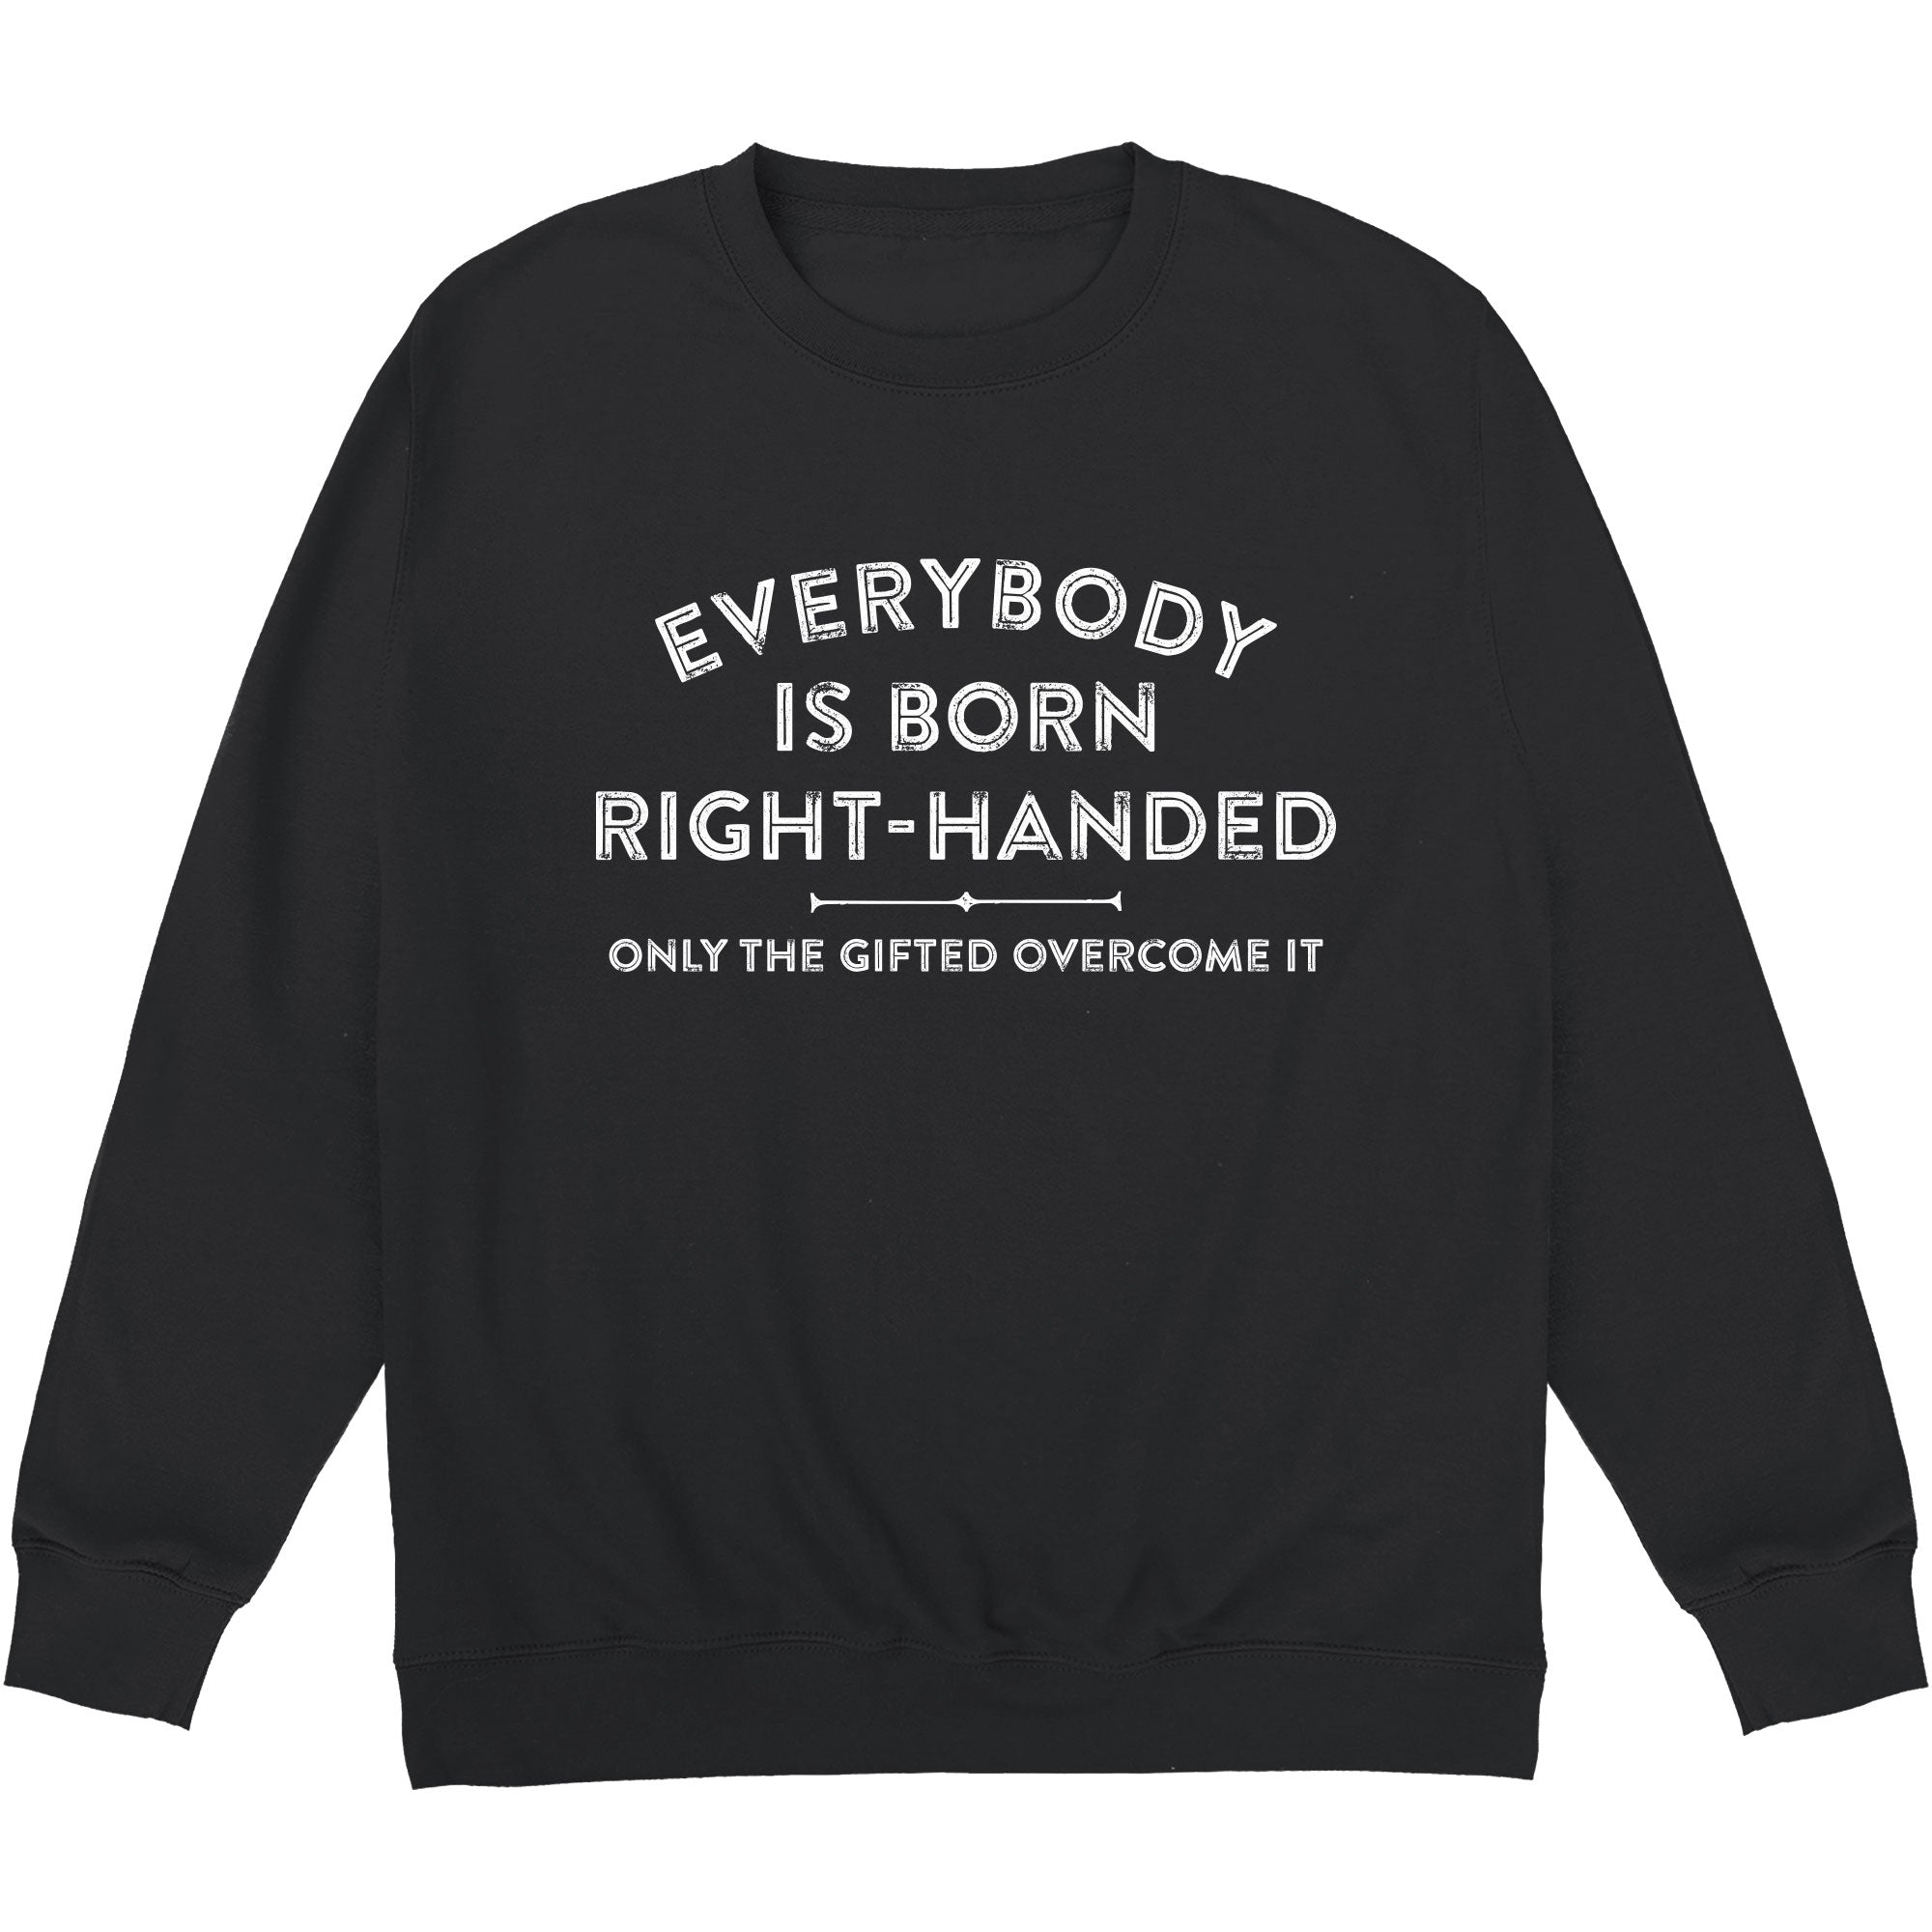 CHEAP Born Right-Handed Sweatshirt 24322675861 – Clothing Accessories